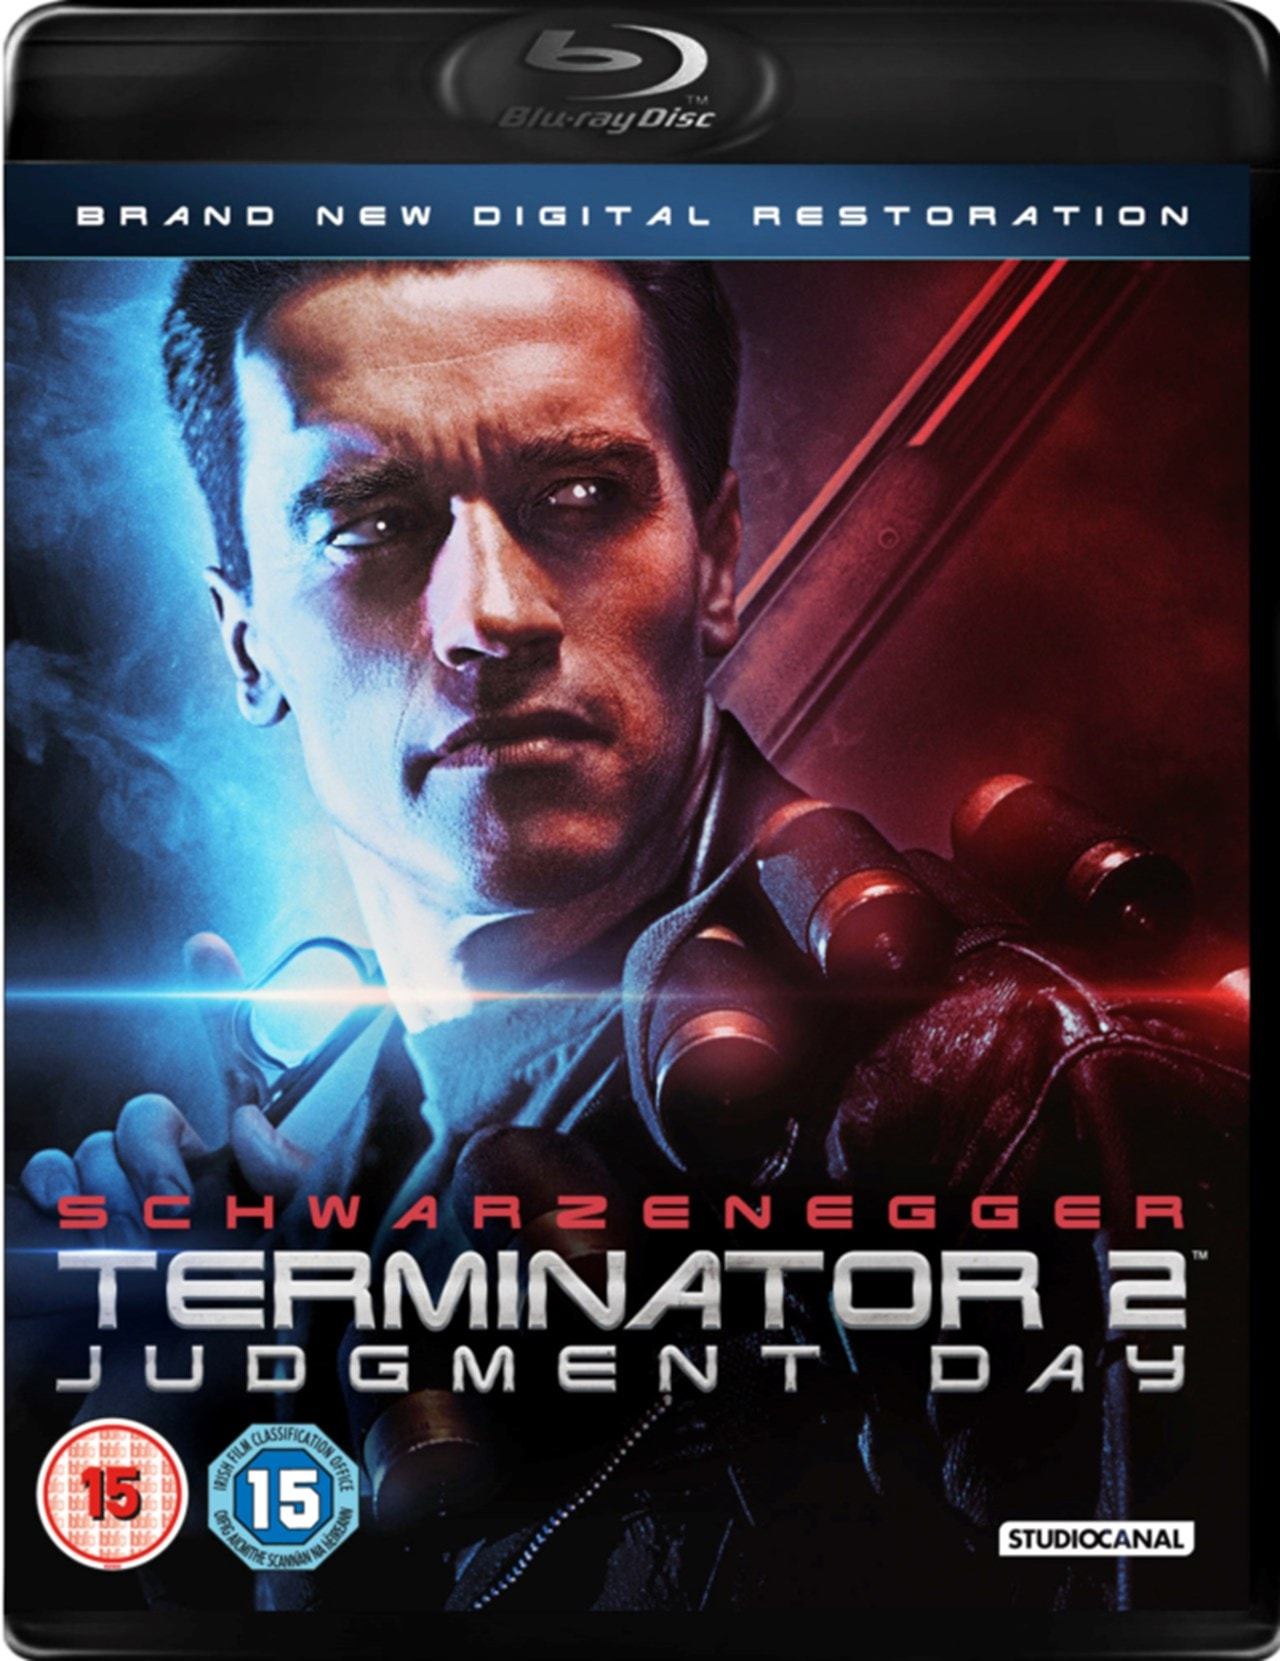 Terminator 2 - Judgment Day   Blu-ray   Free shipping over £20